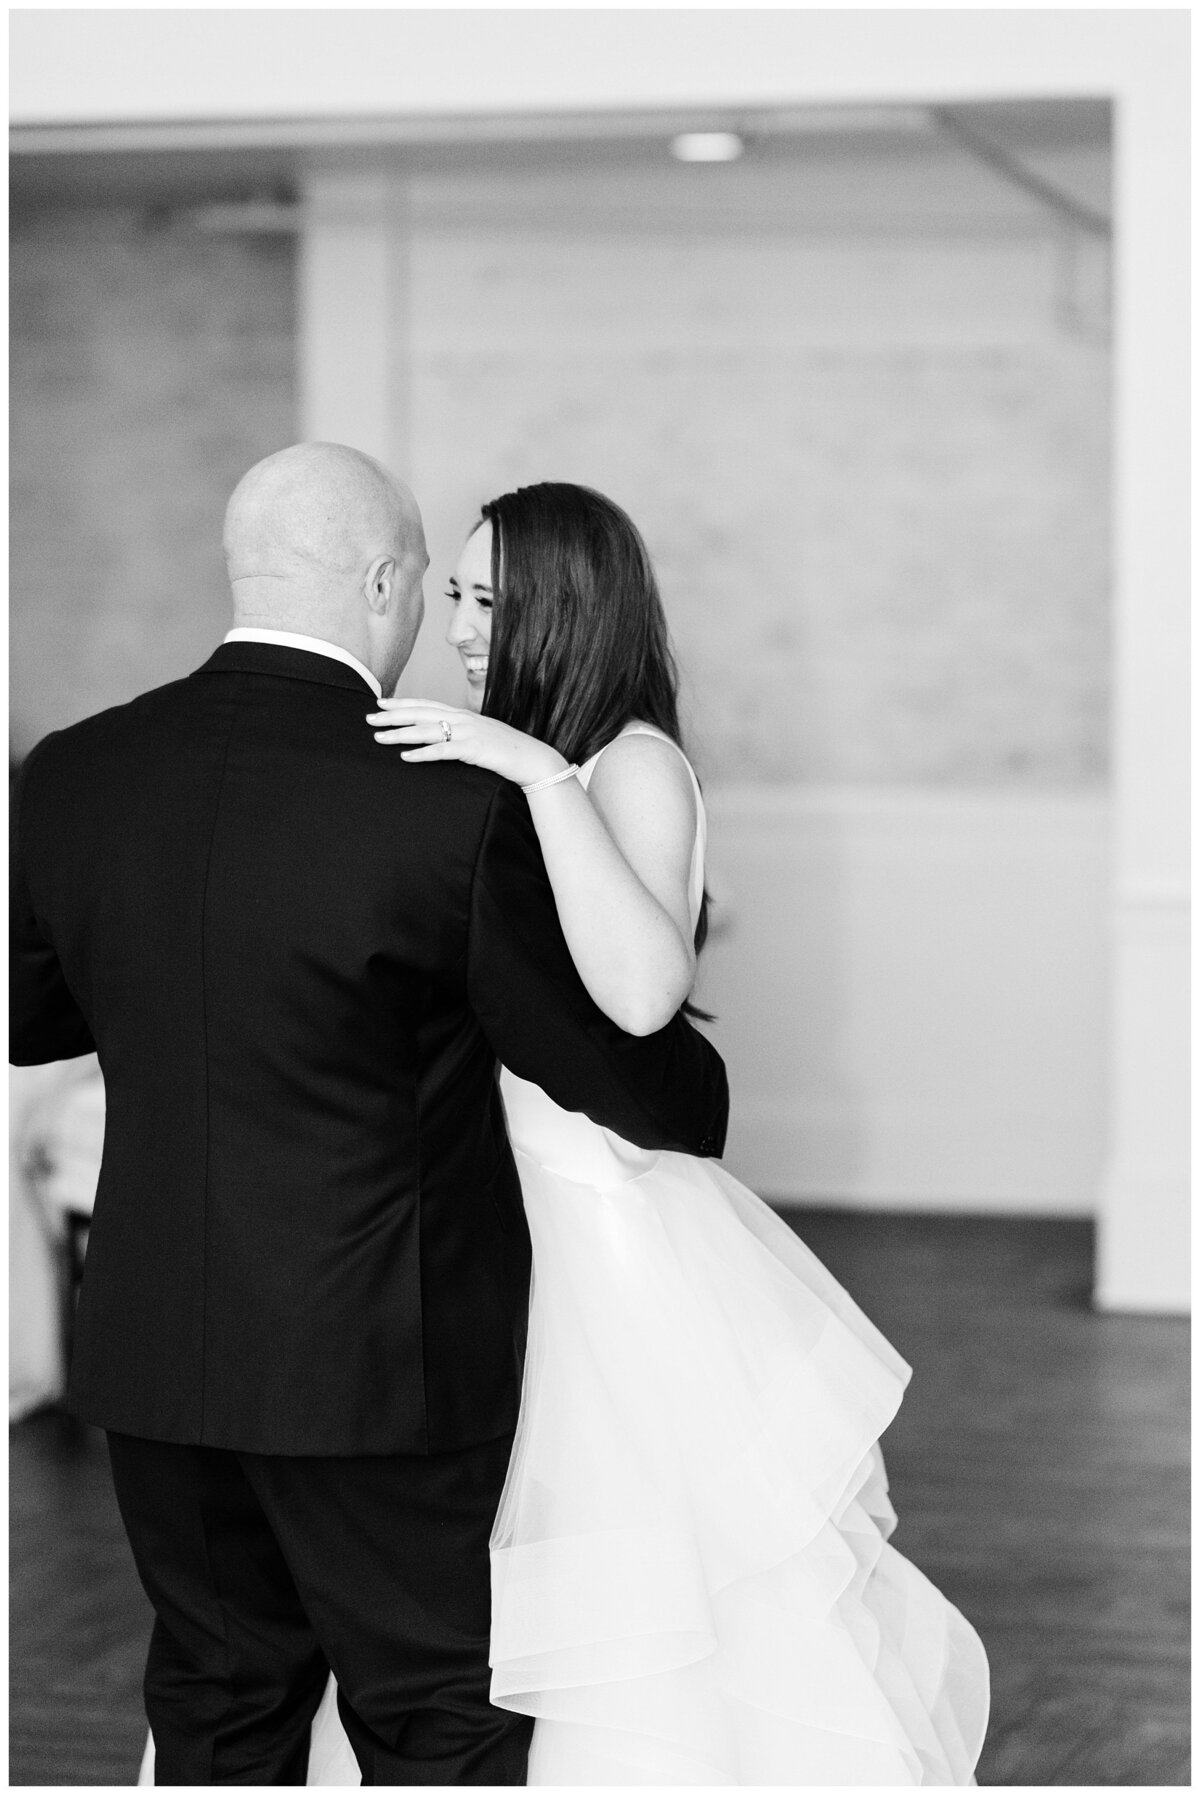 harkins-wedding-atlanta-georgia-photographer-66